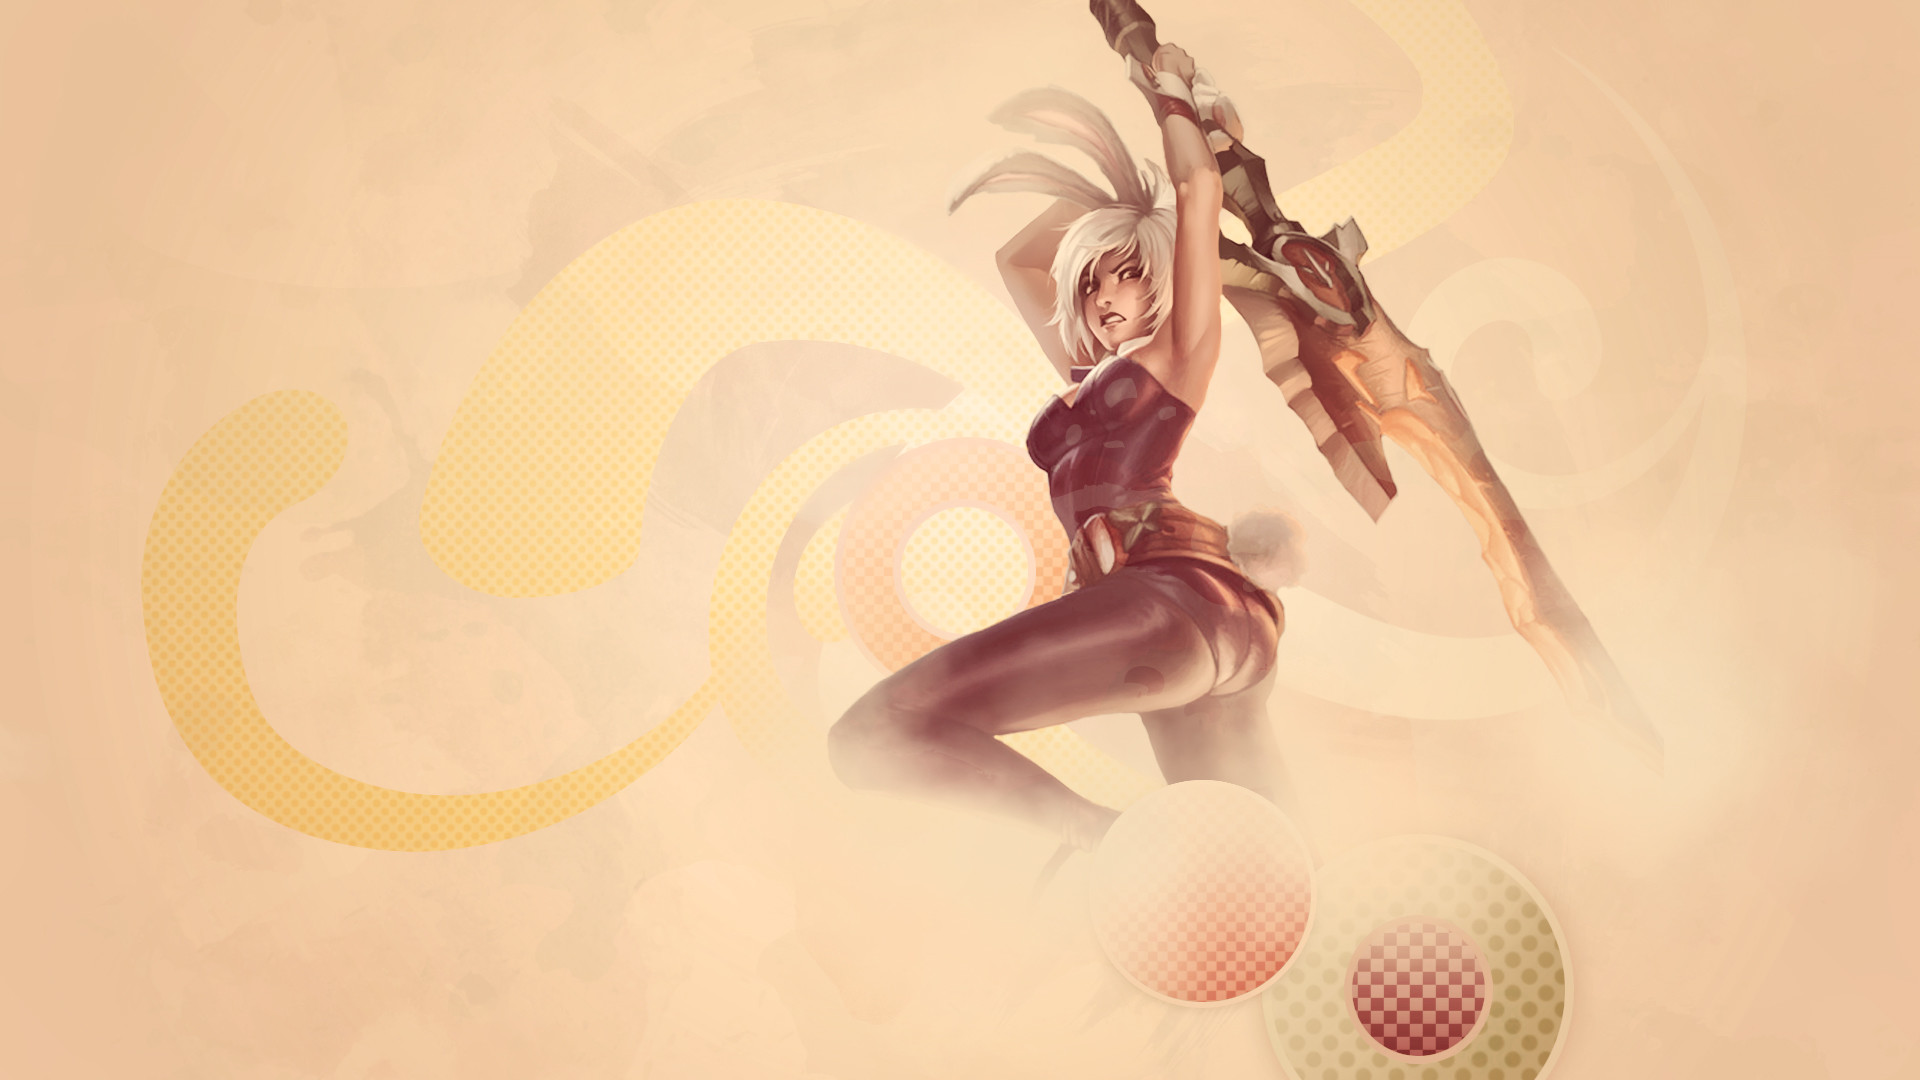 battle bunny riven wallpapers hd 80 background pictures